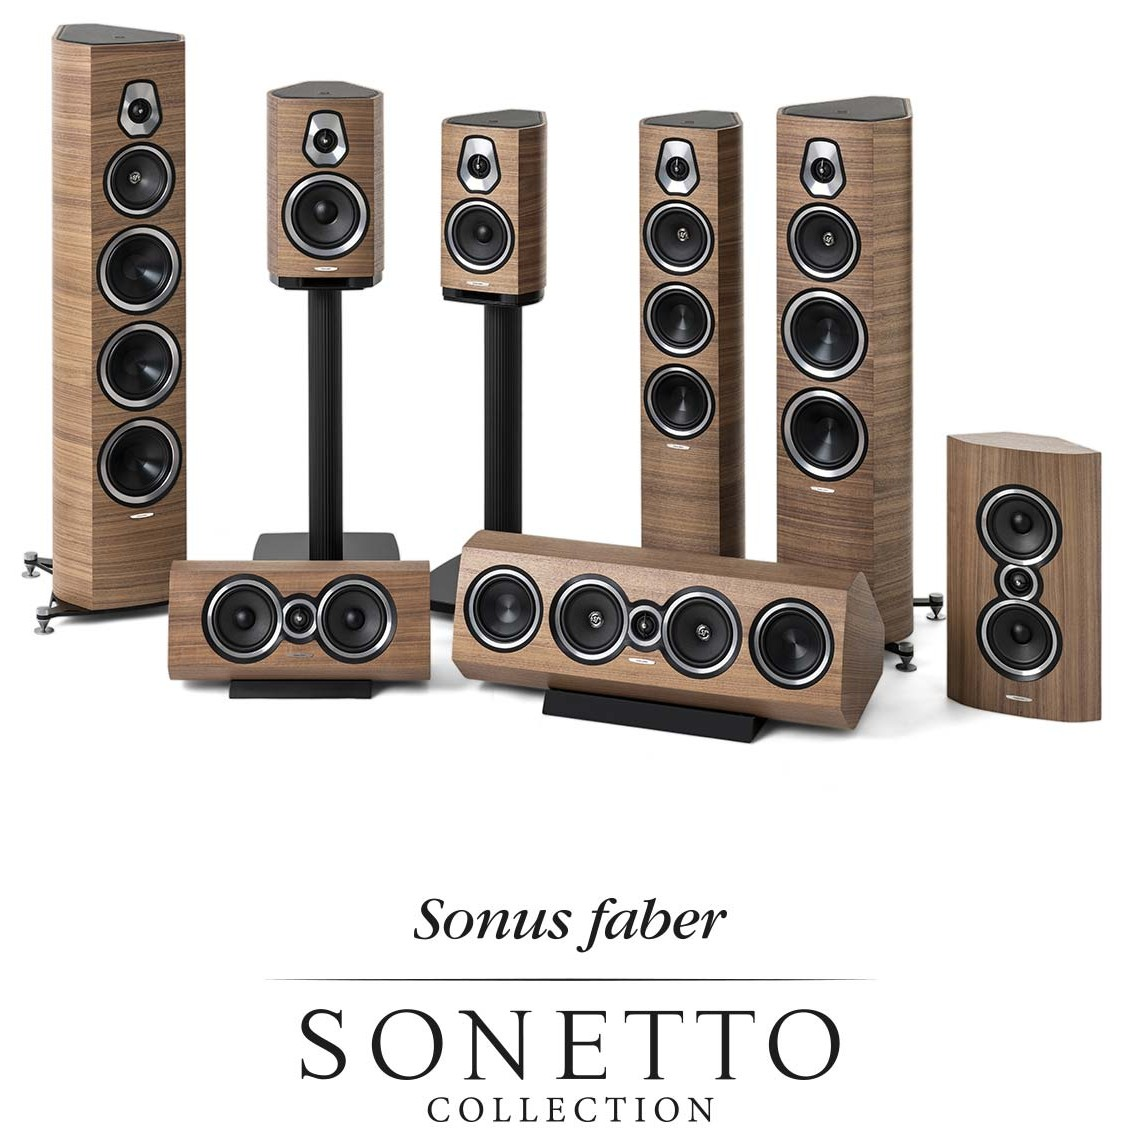 sonetto-web